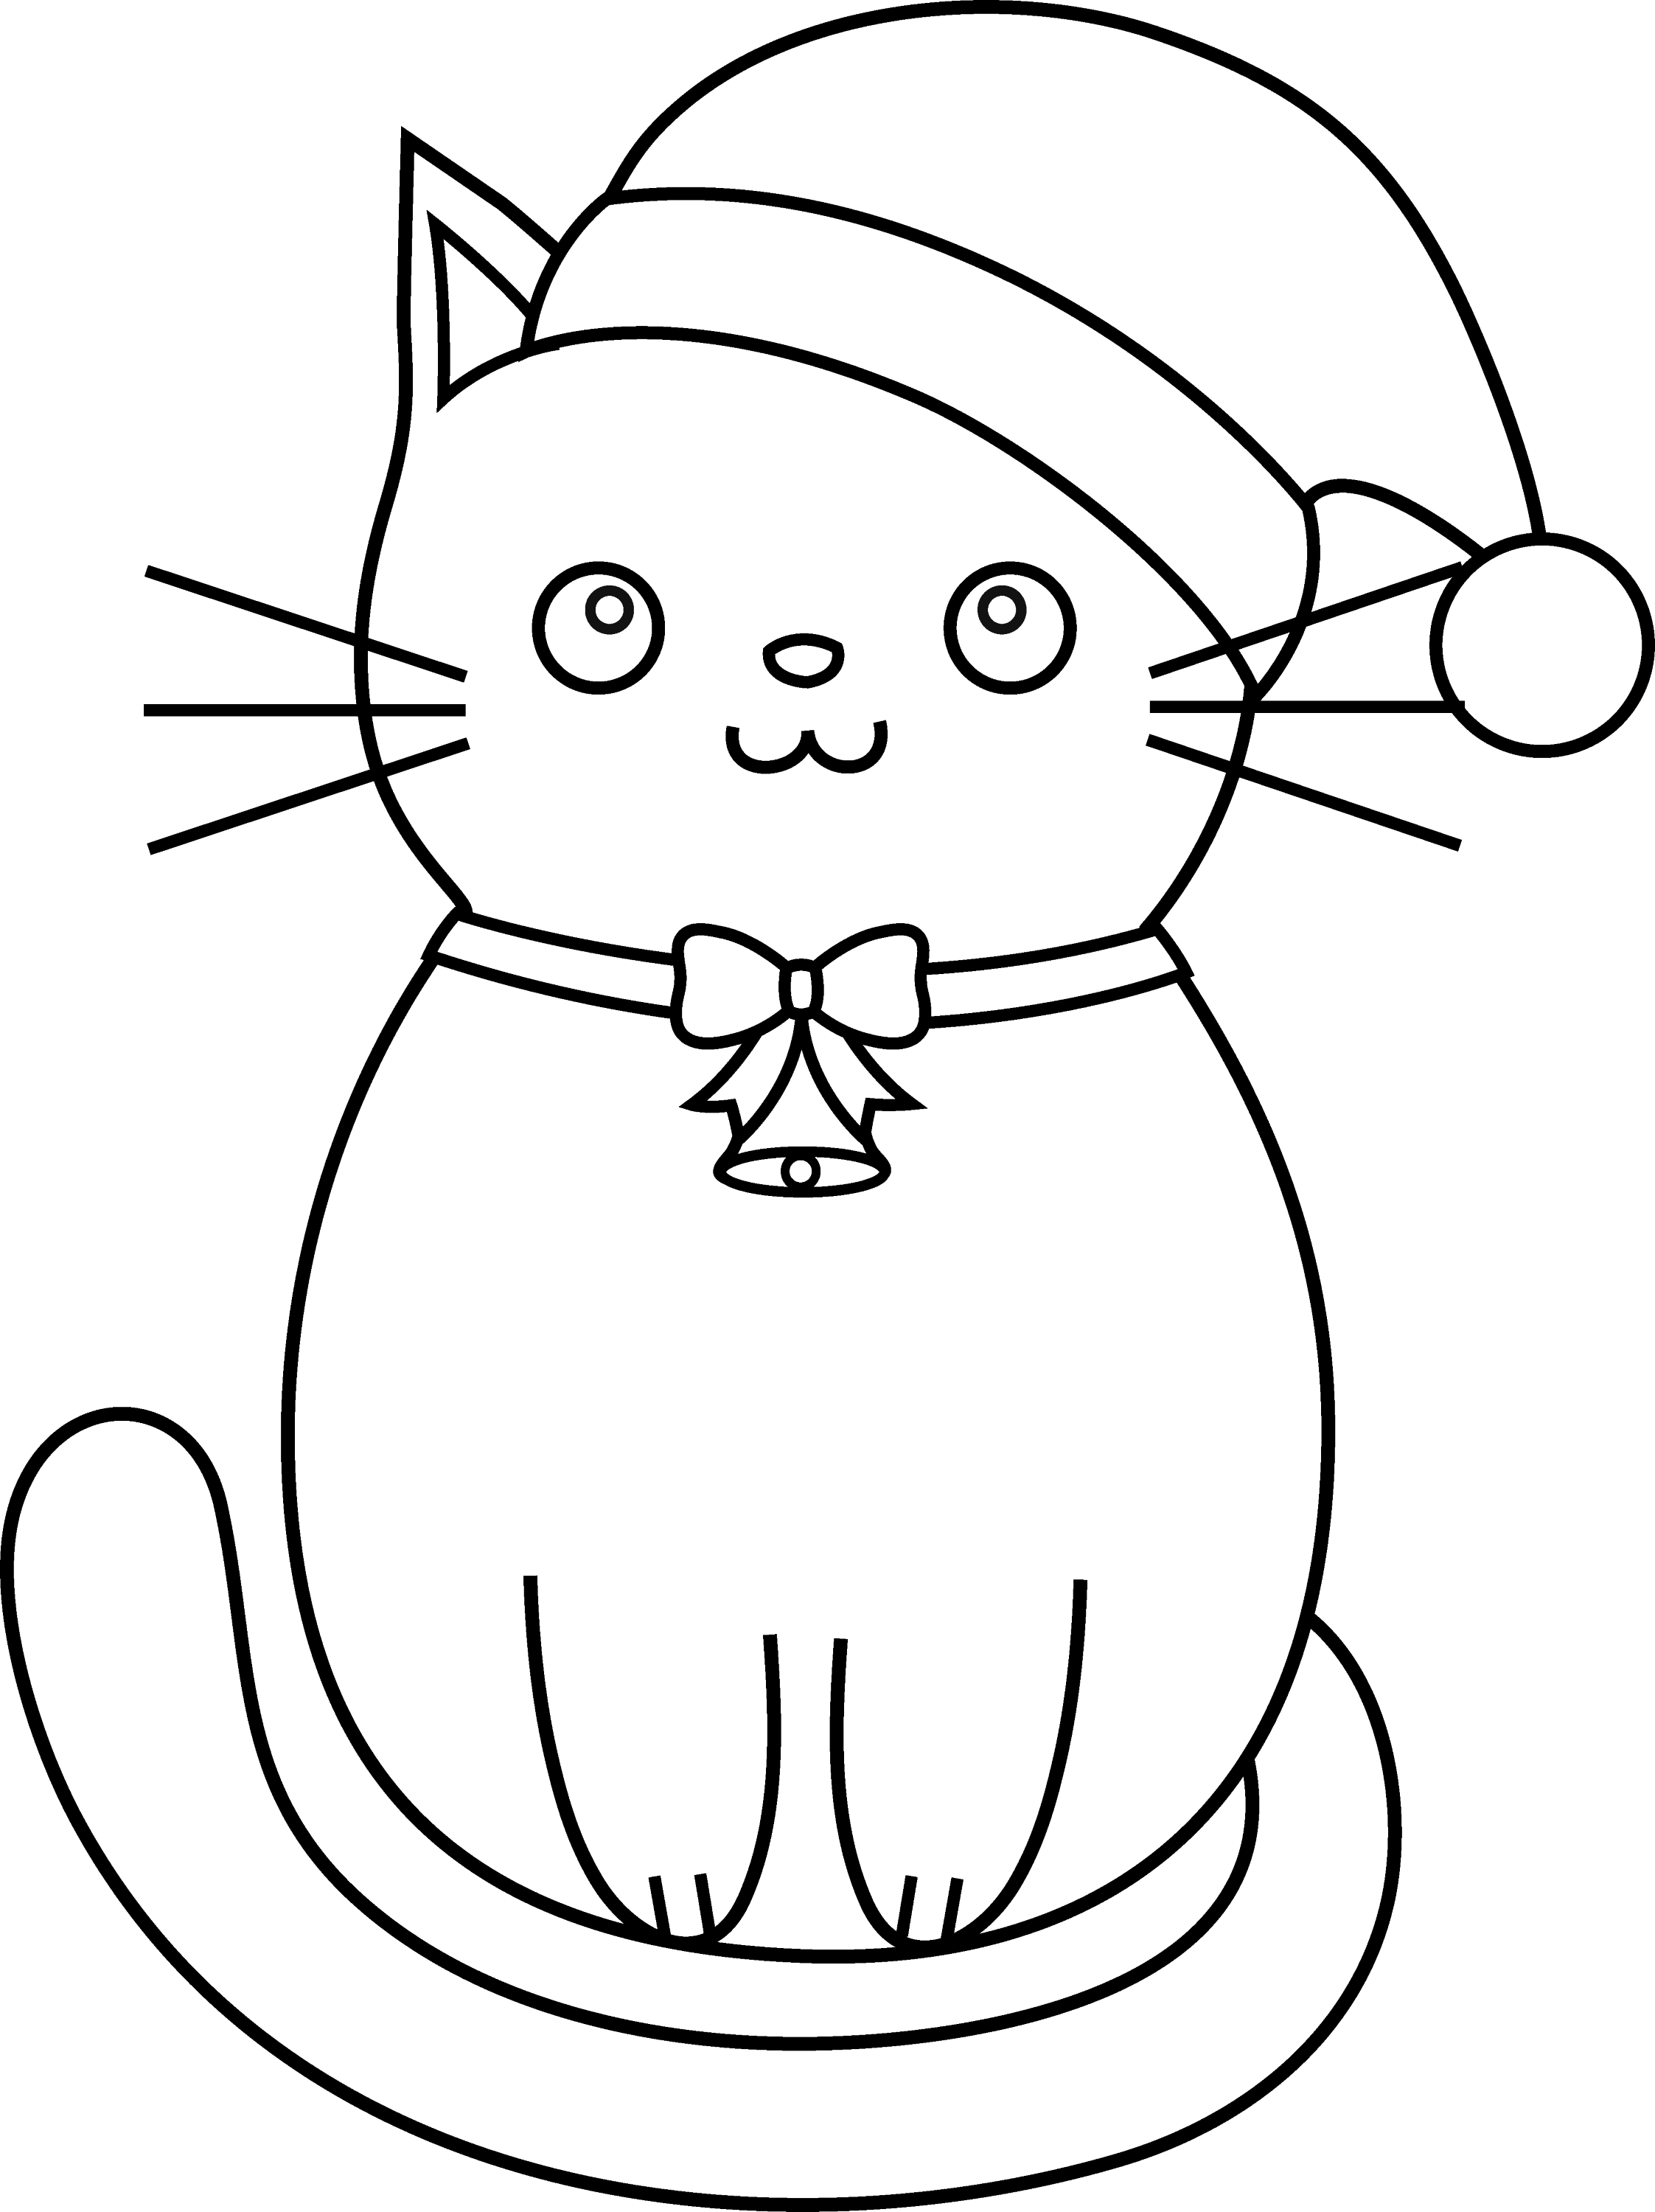 Cat Outline Coloring Page Coloring Pages